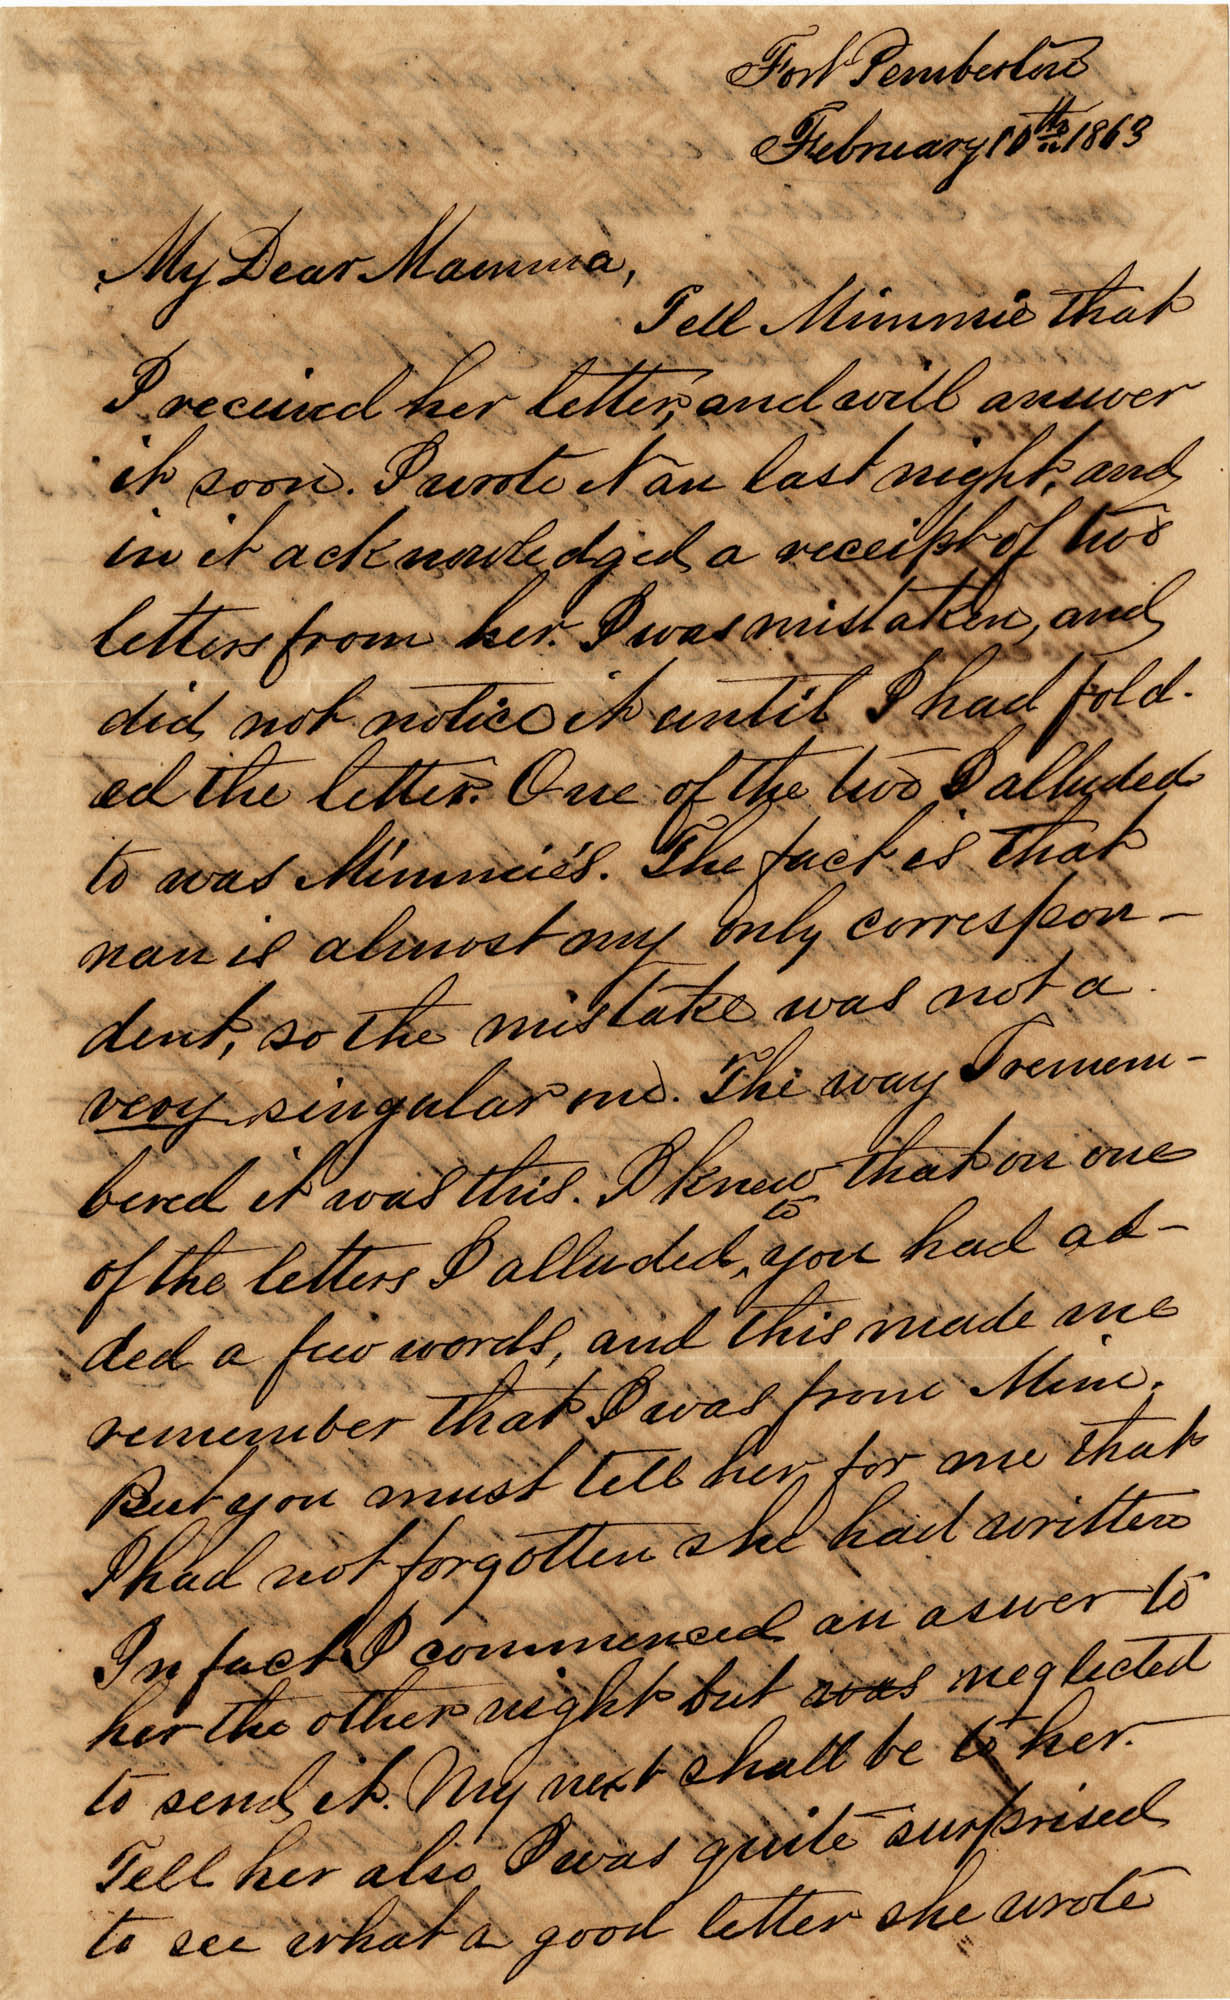 097. John Keith to Anna Bella Keith -- February 10, 1863